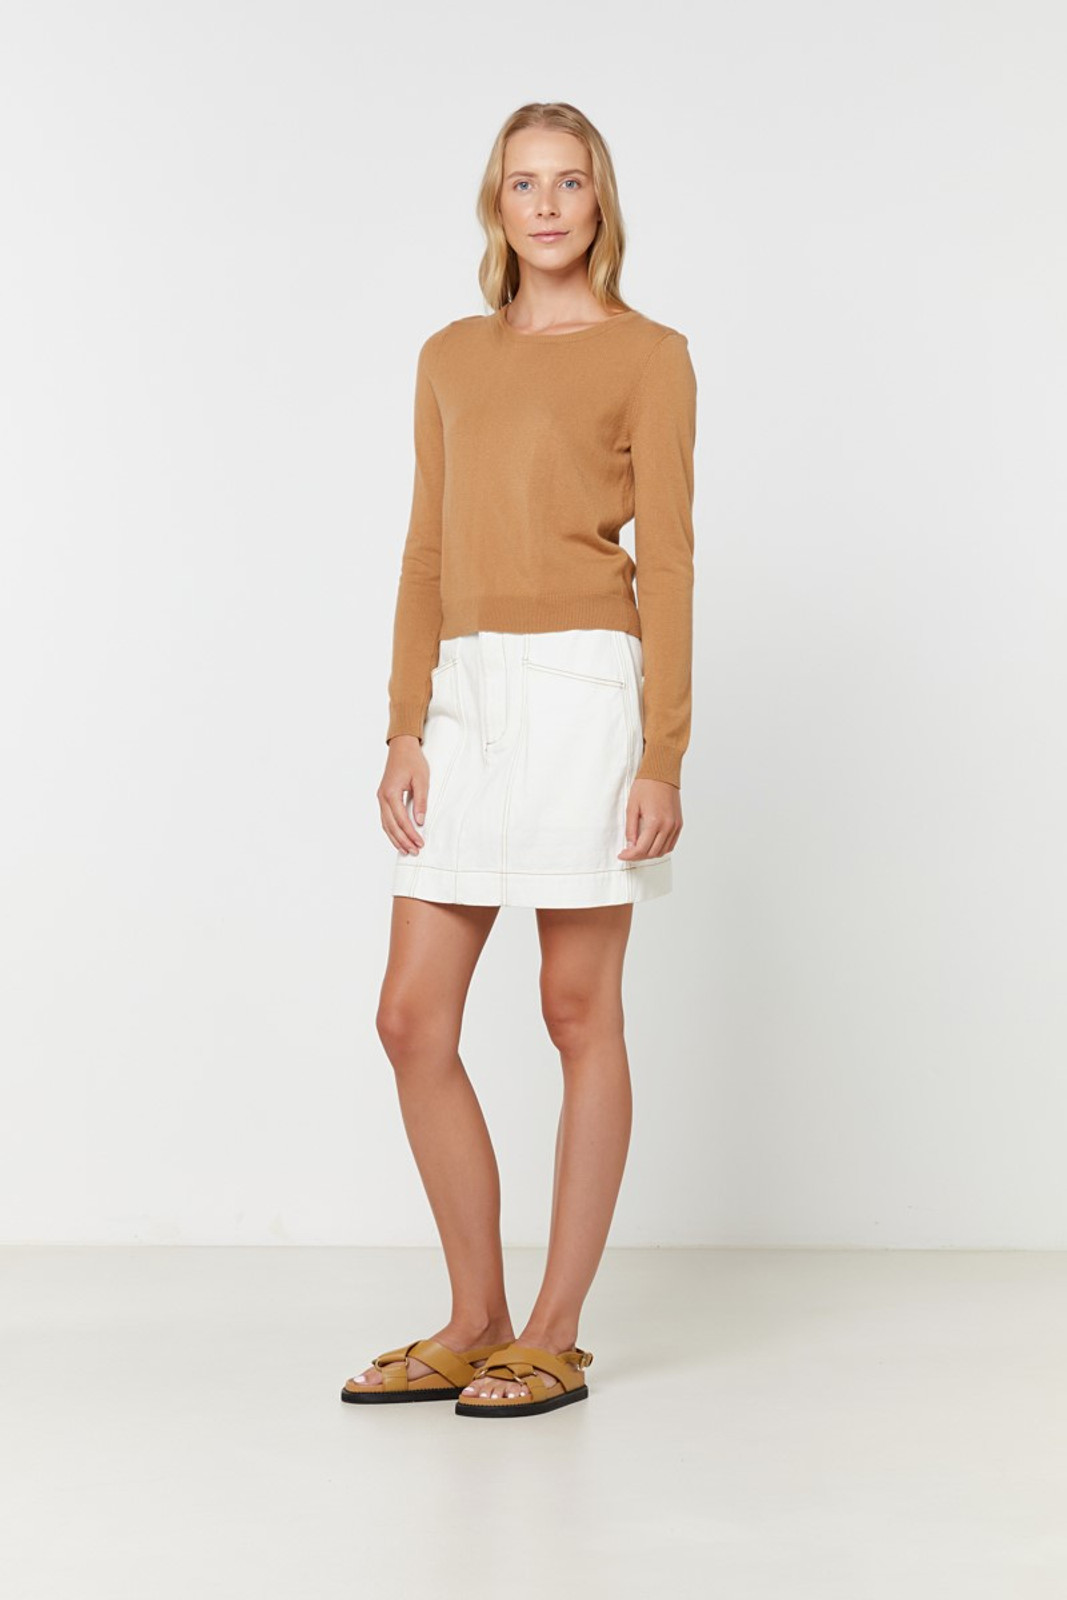 Elka Collective Gale Knit Neutrals  0